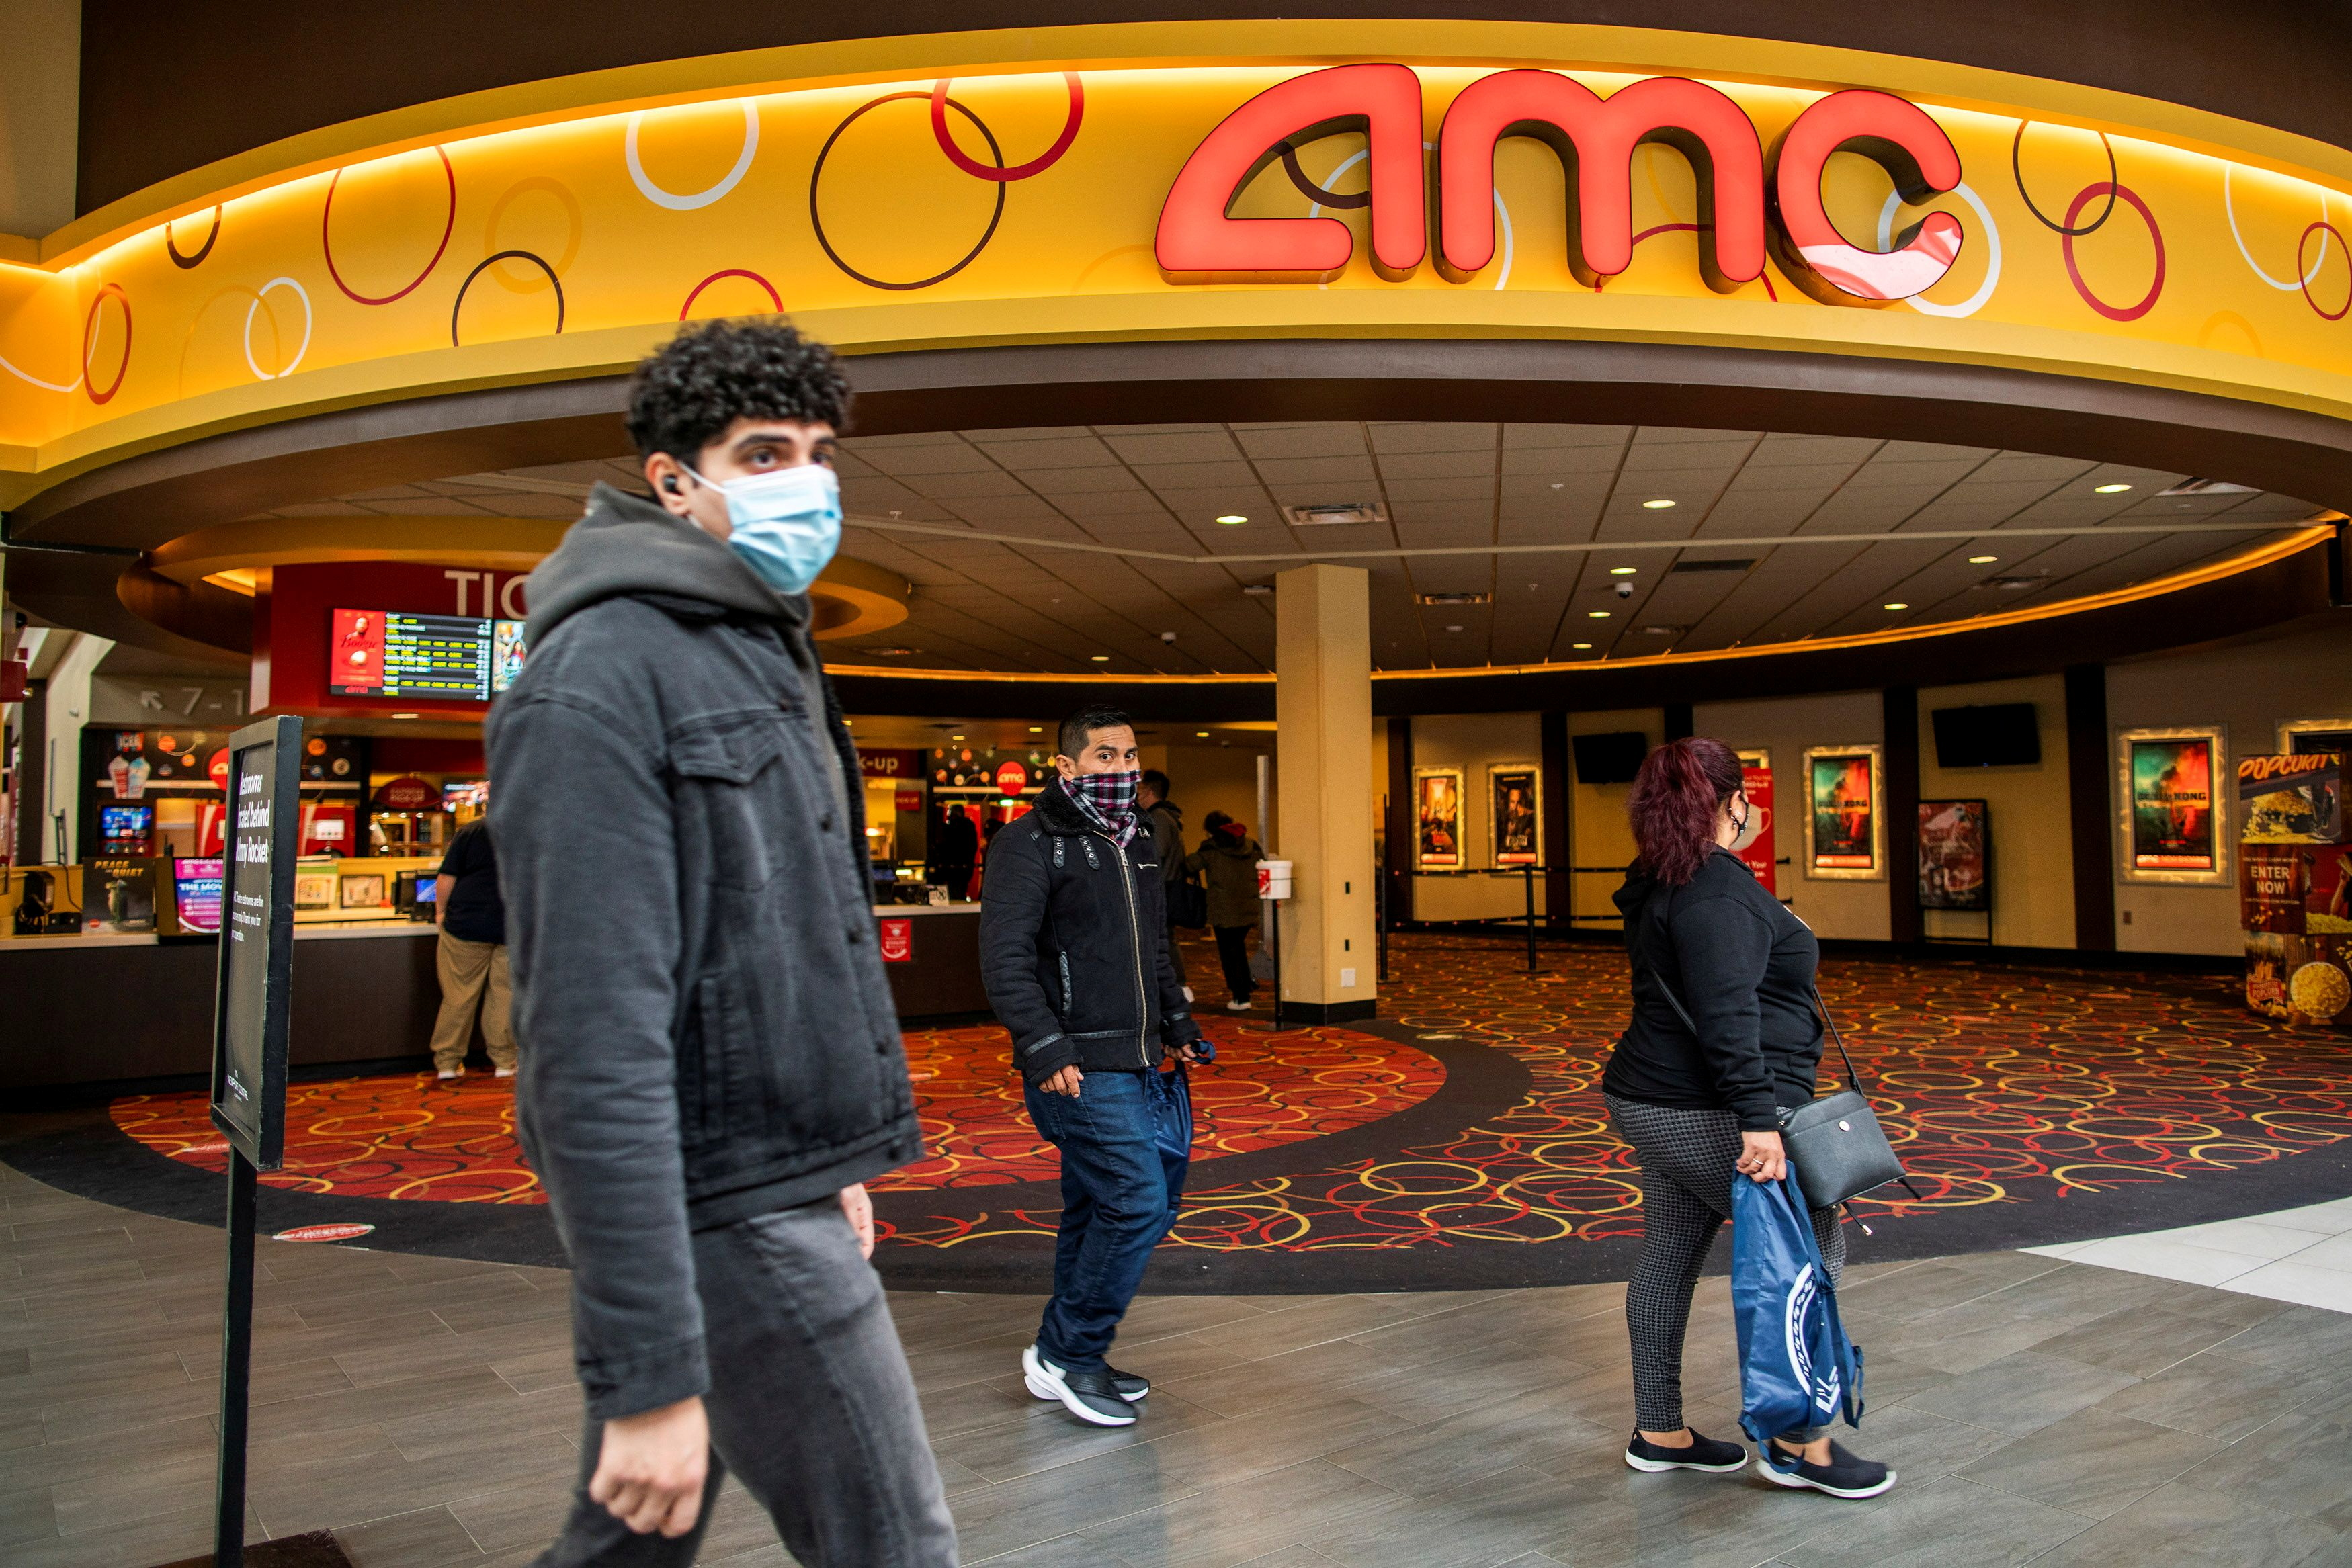 People wear face masks as they walk by a movie theater during the coronavirus disease (COVID-19) pandemic in Newport, New Jersey, U.S., April 2, 2021. REUTERS/Eduardo Munoz/File Photo